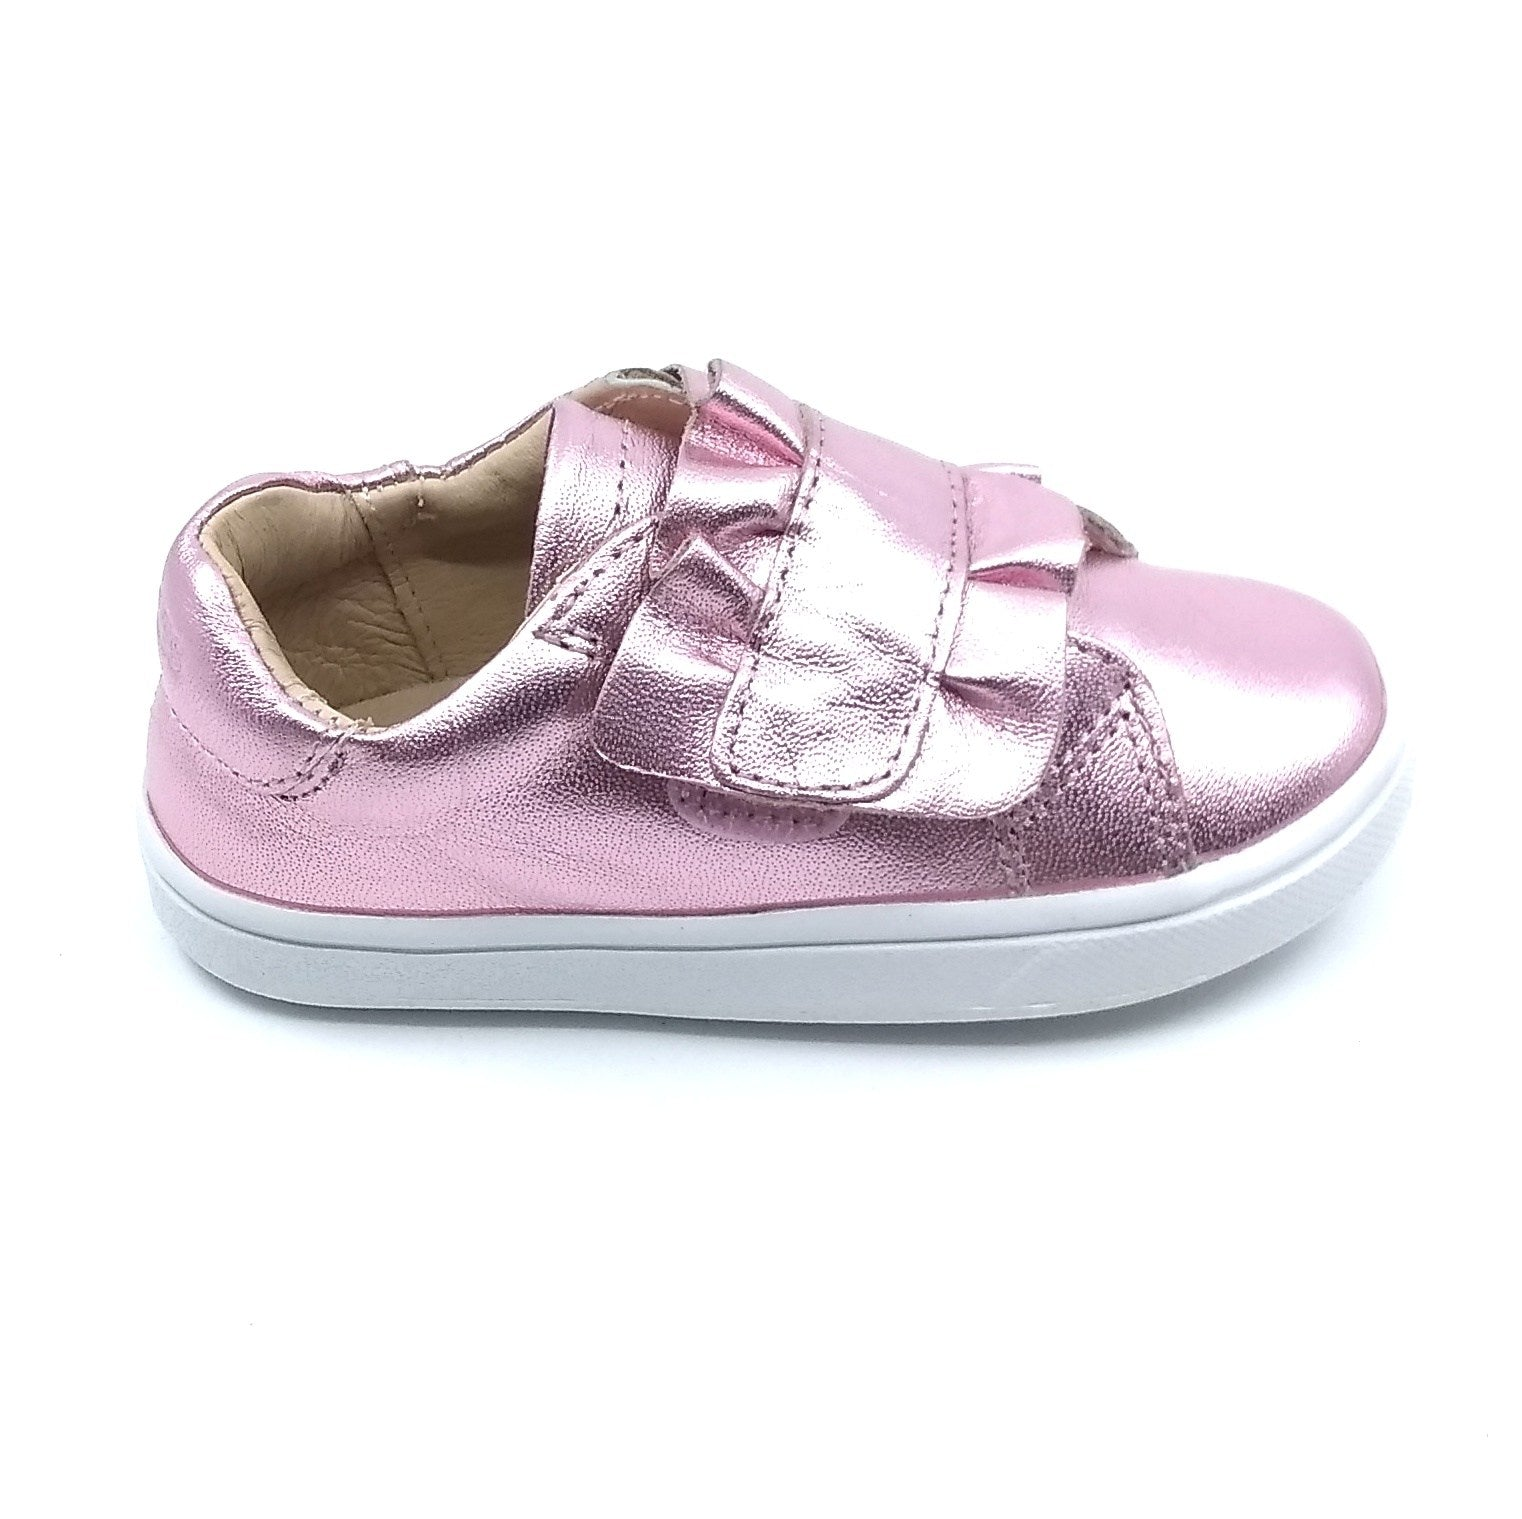 Old Soles Urban Frill Pink Frost